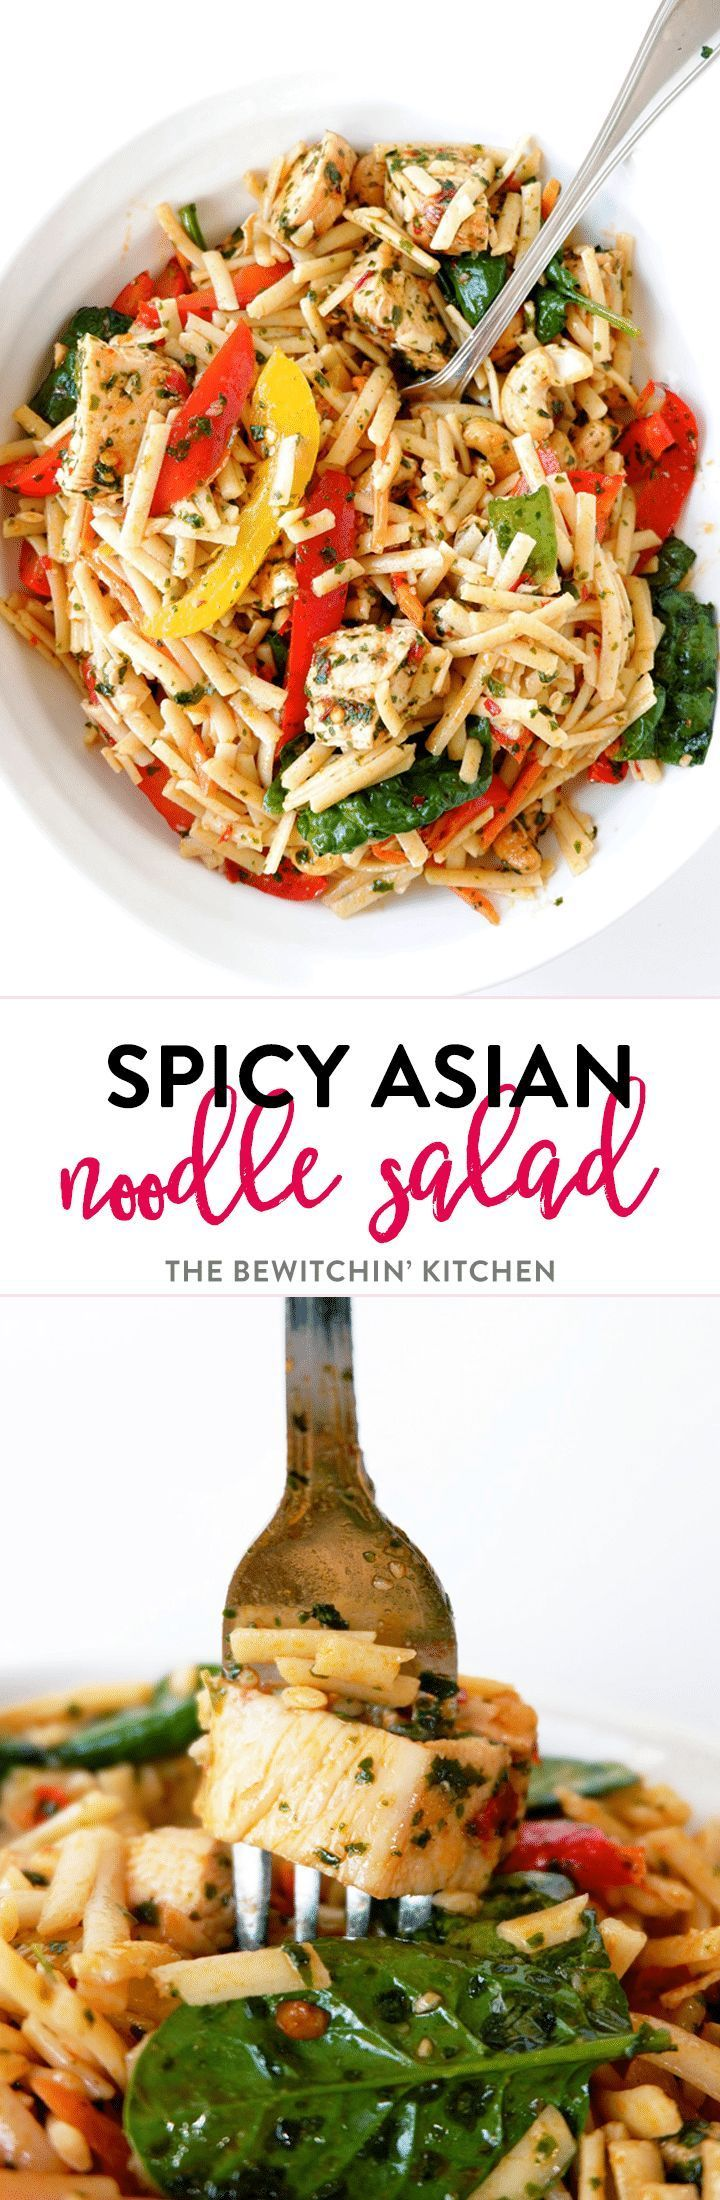 Spicy Asian noodle salad recipe - a delicious cold pasta salad recipe with an asian dressing with sesame oil, chili flakes, chili paste, garlic and more.